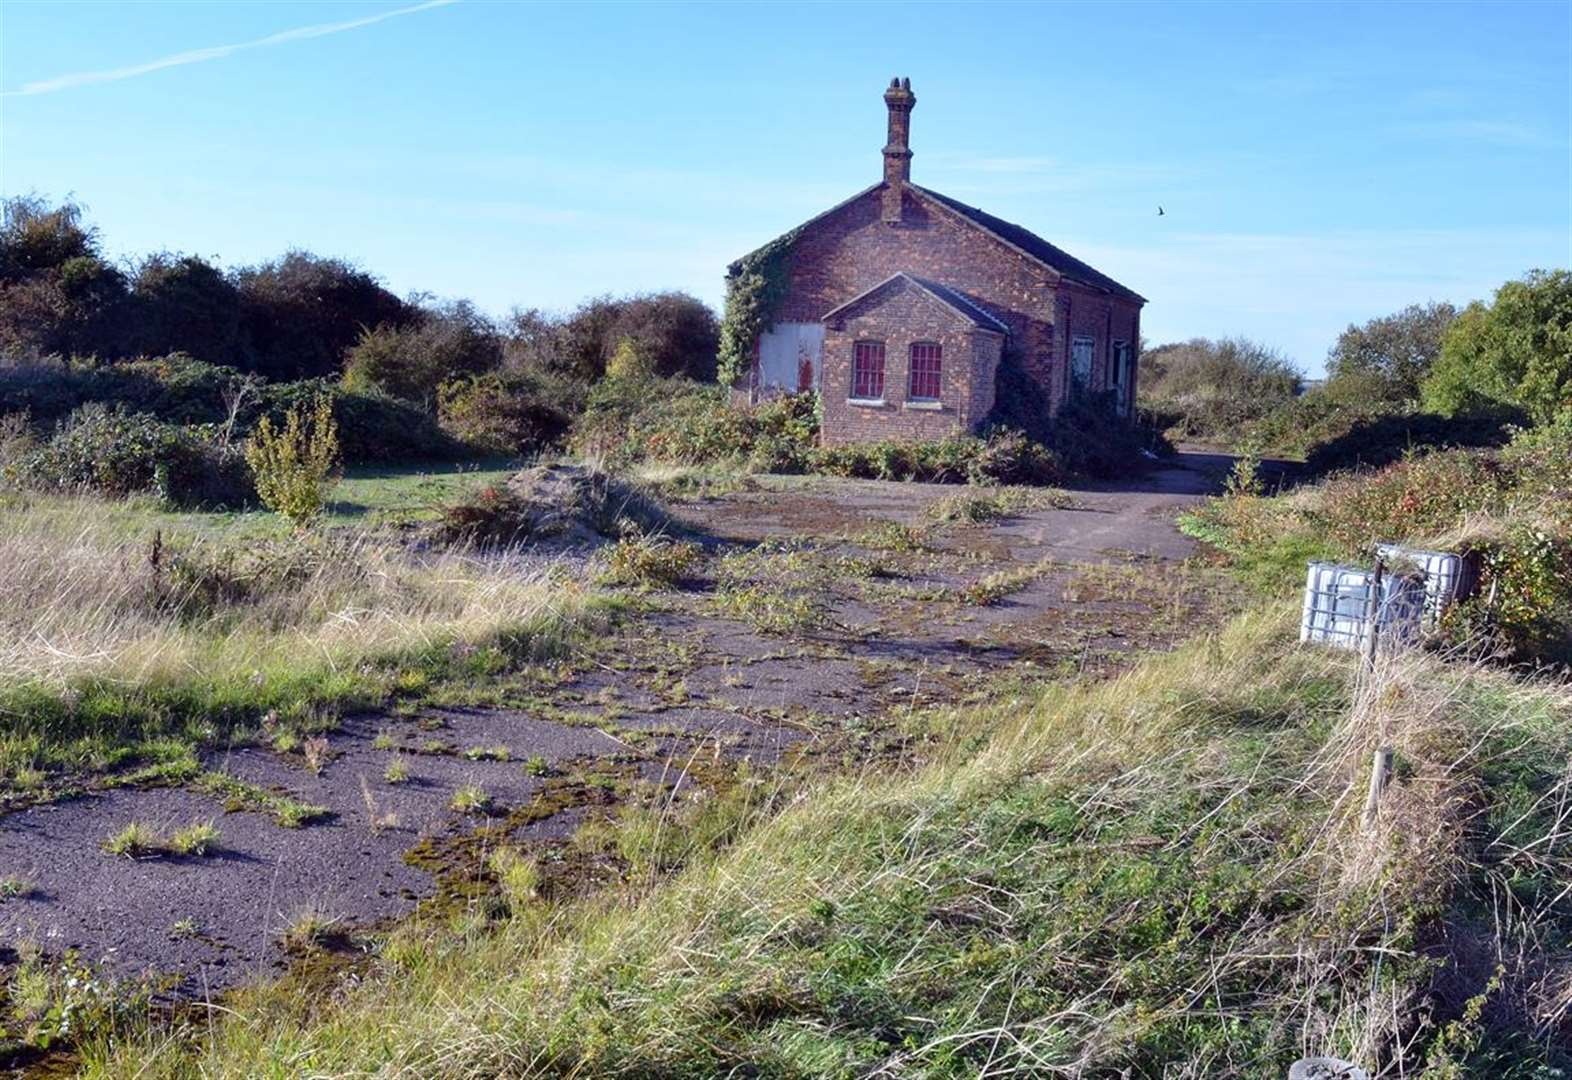 COWBIT PARISH COUNCIL: Village calls for share of new homes cash